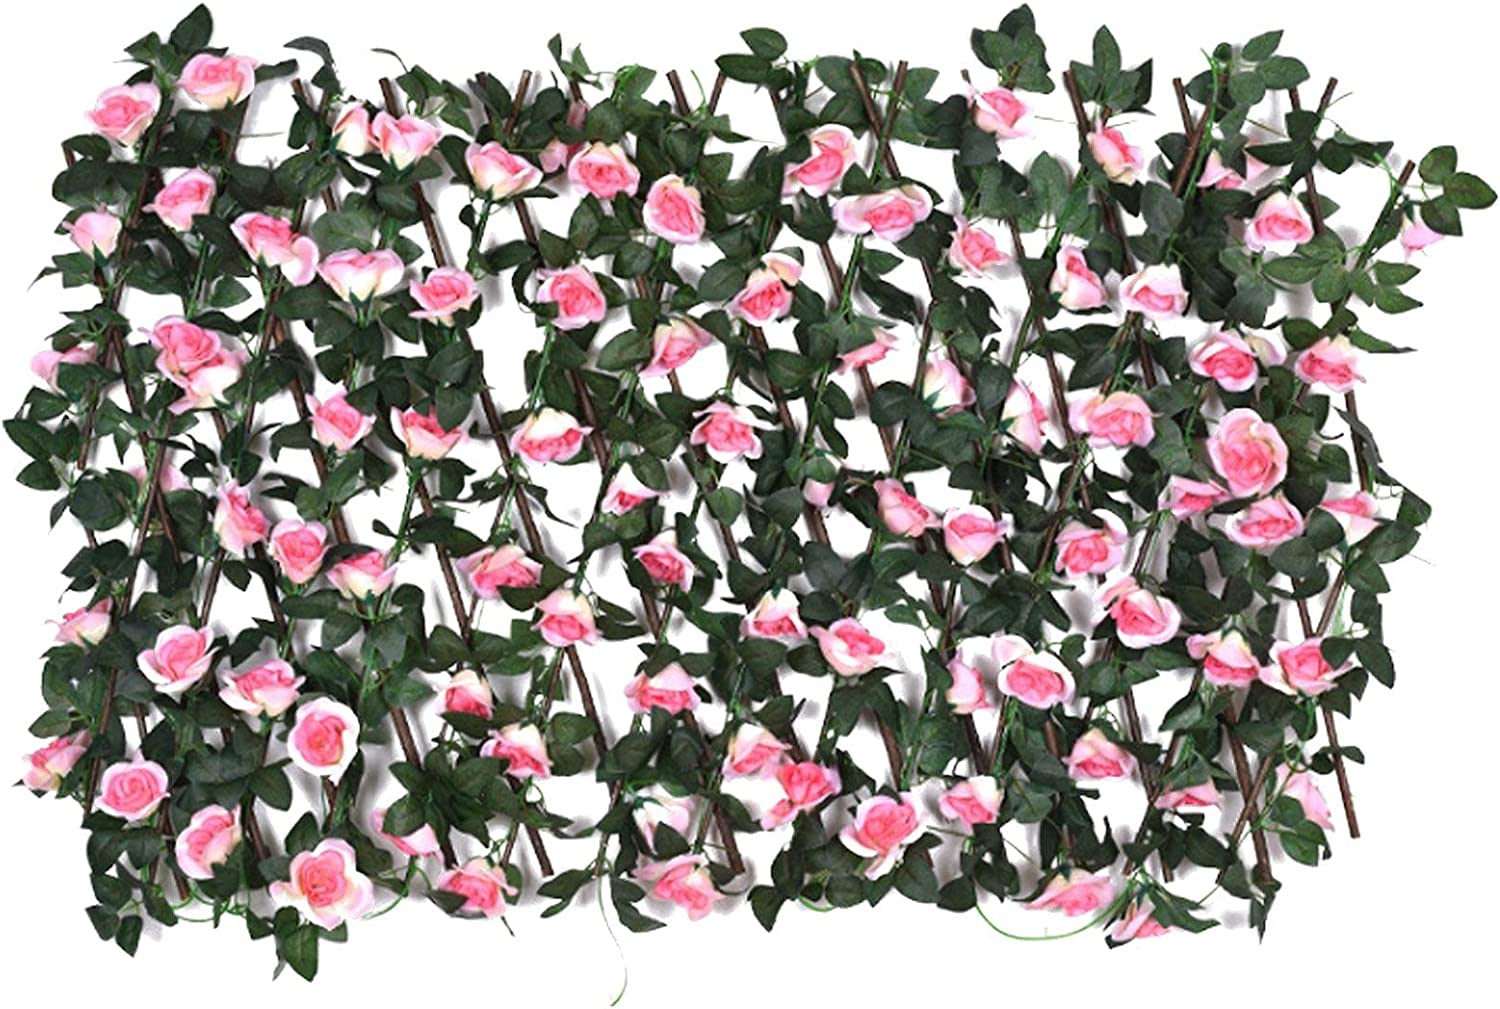 AIKY Artificial Hedges Faux Ivy Fence Spasm price Expandable Artifici Popular standard Leaves